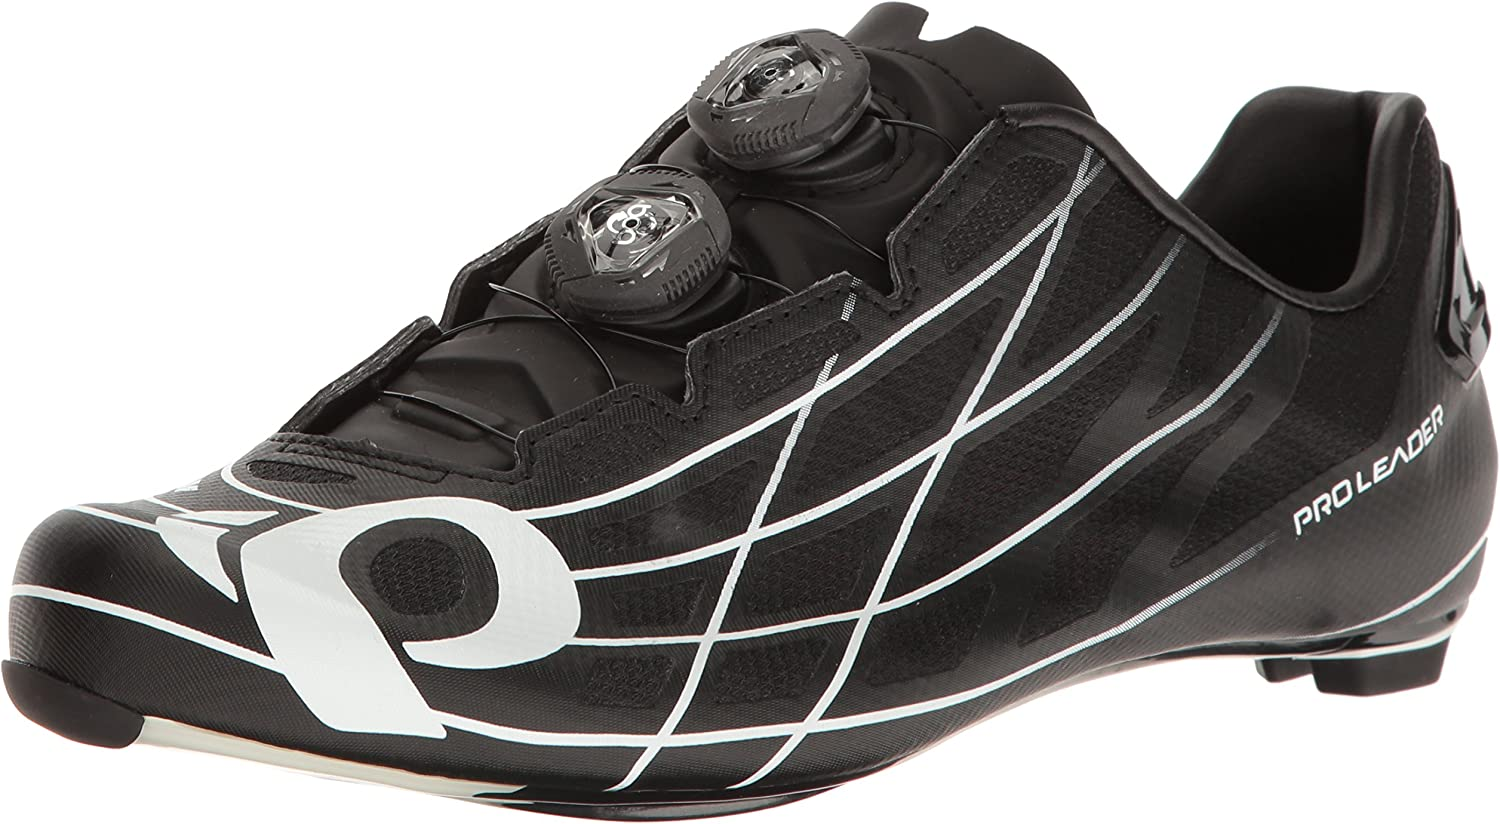 Pearl Izumi Pro Leader Iii Cycling shoes